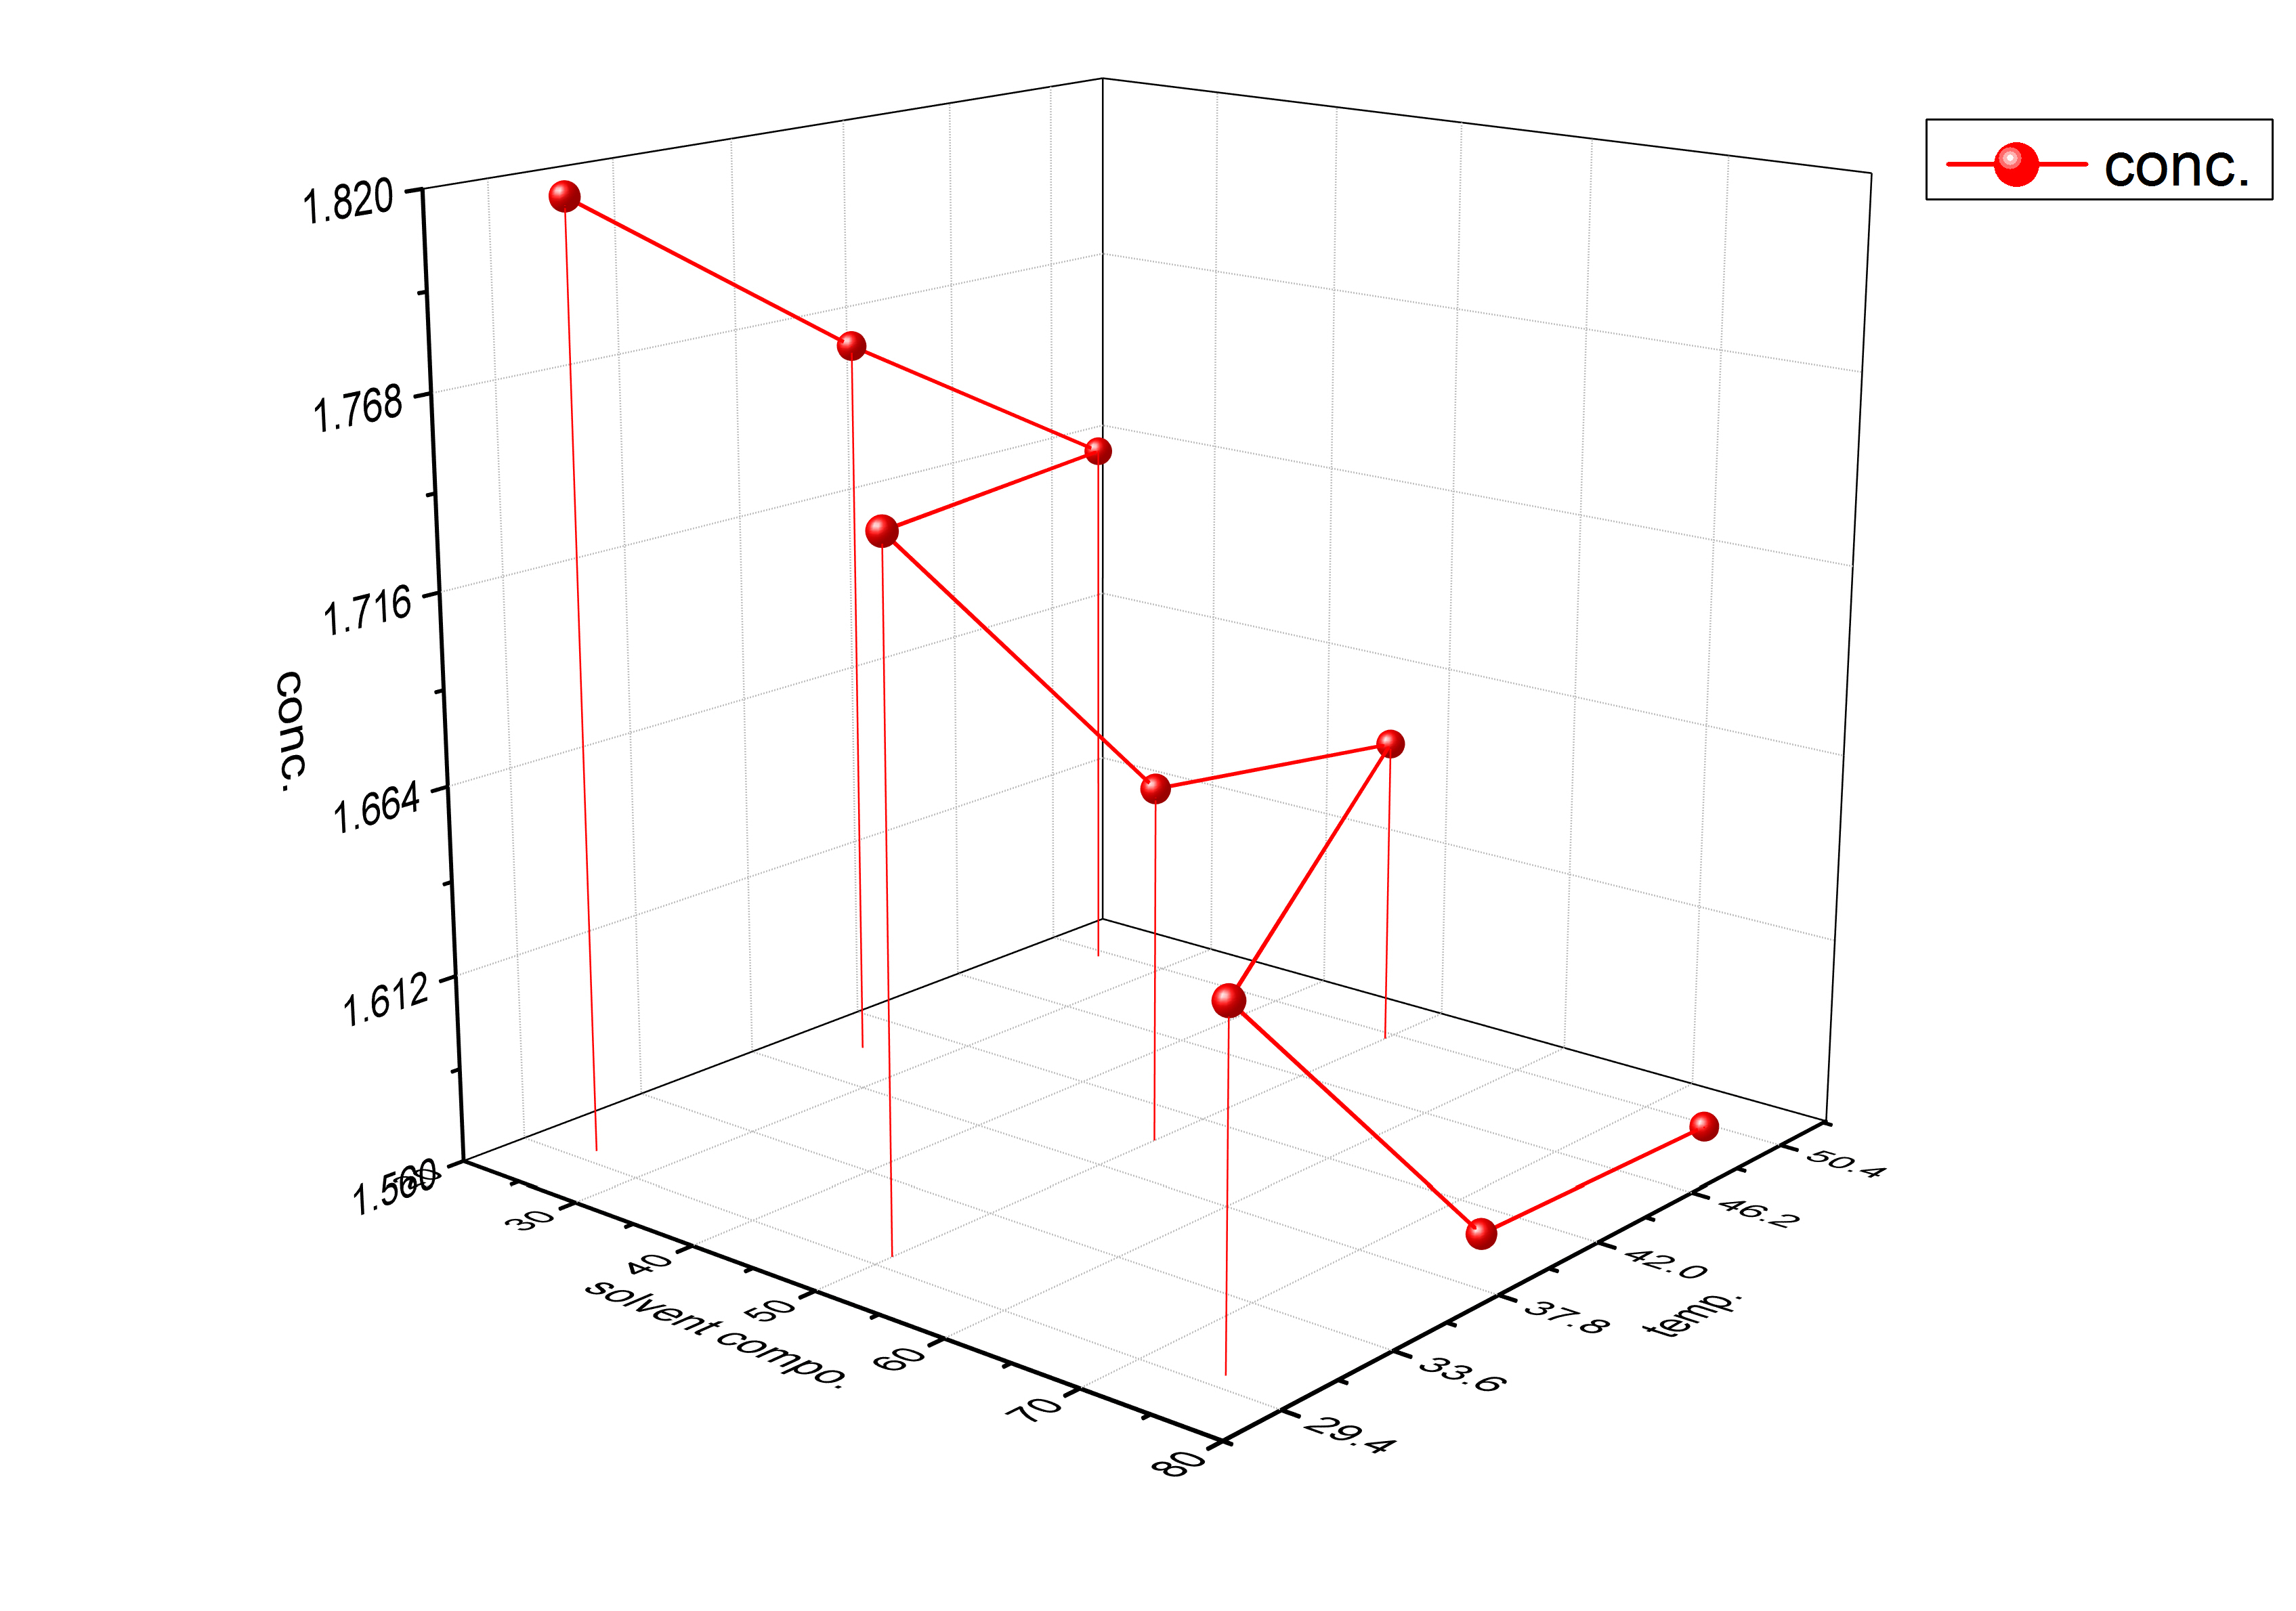 Does Anyone Know How To Plot 3d Surface Graph